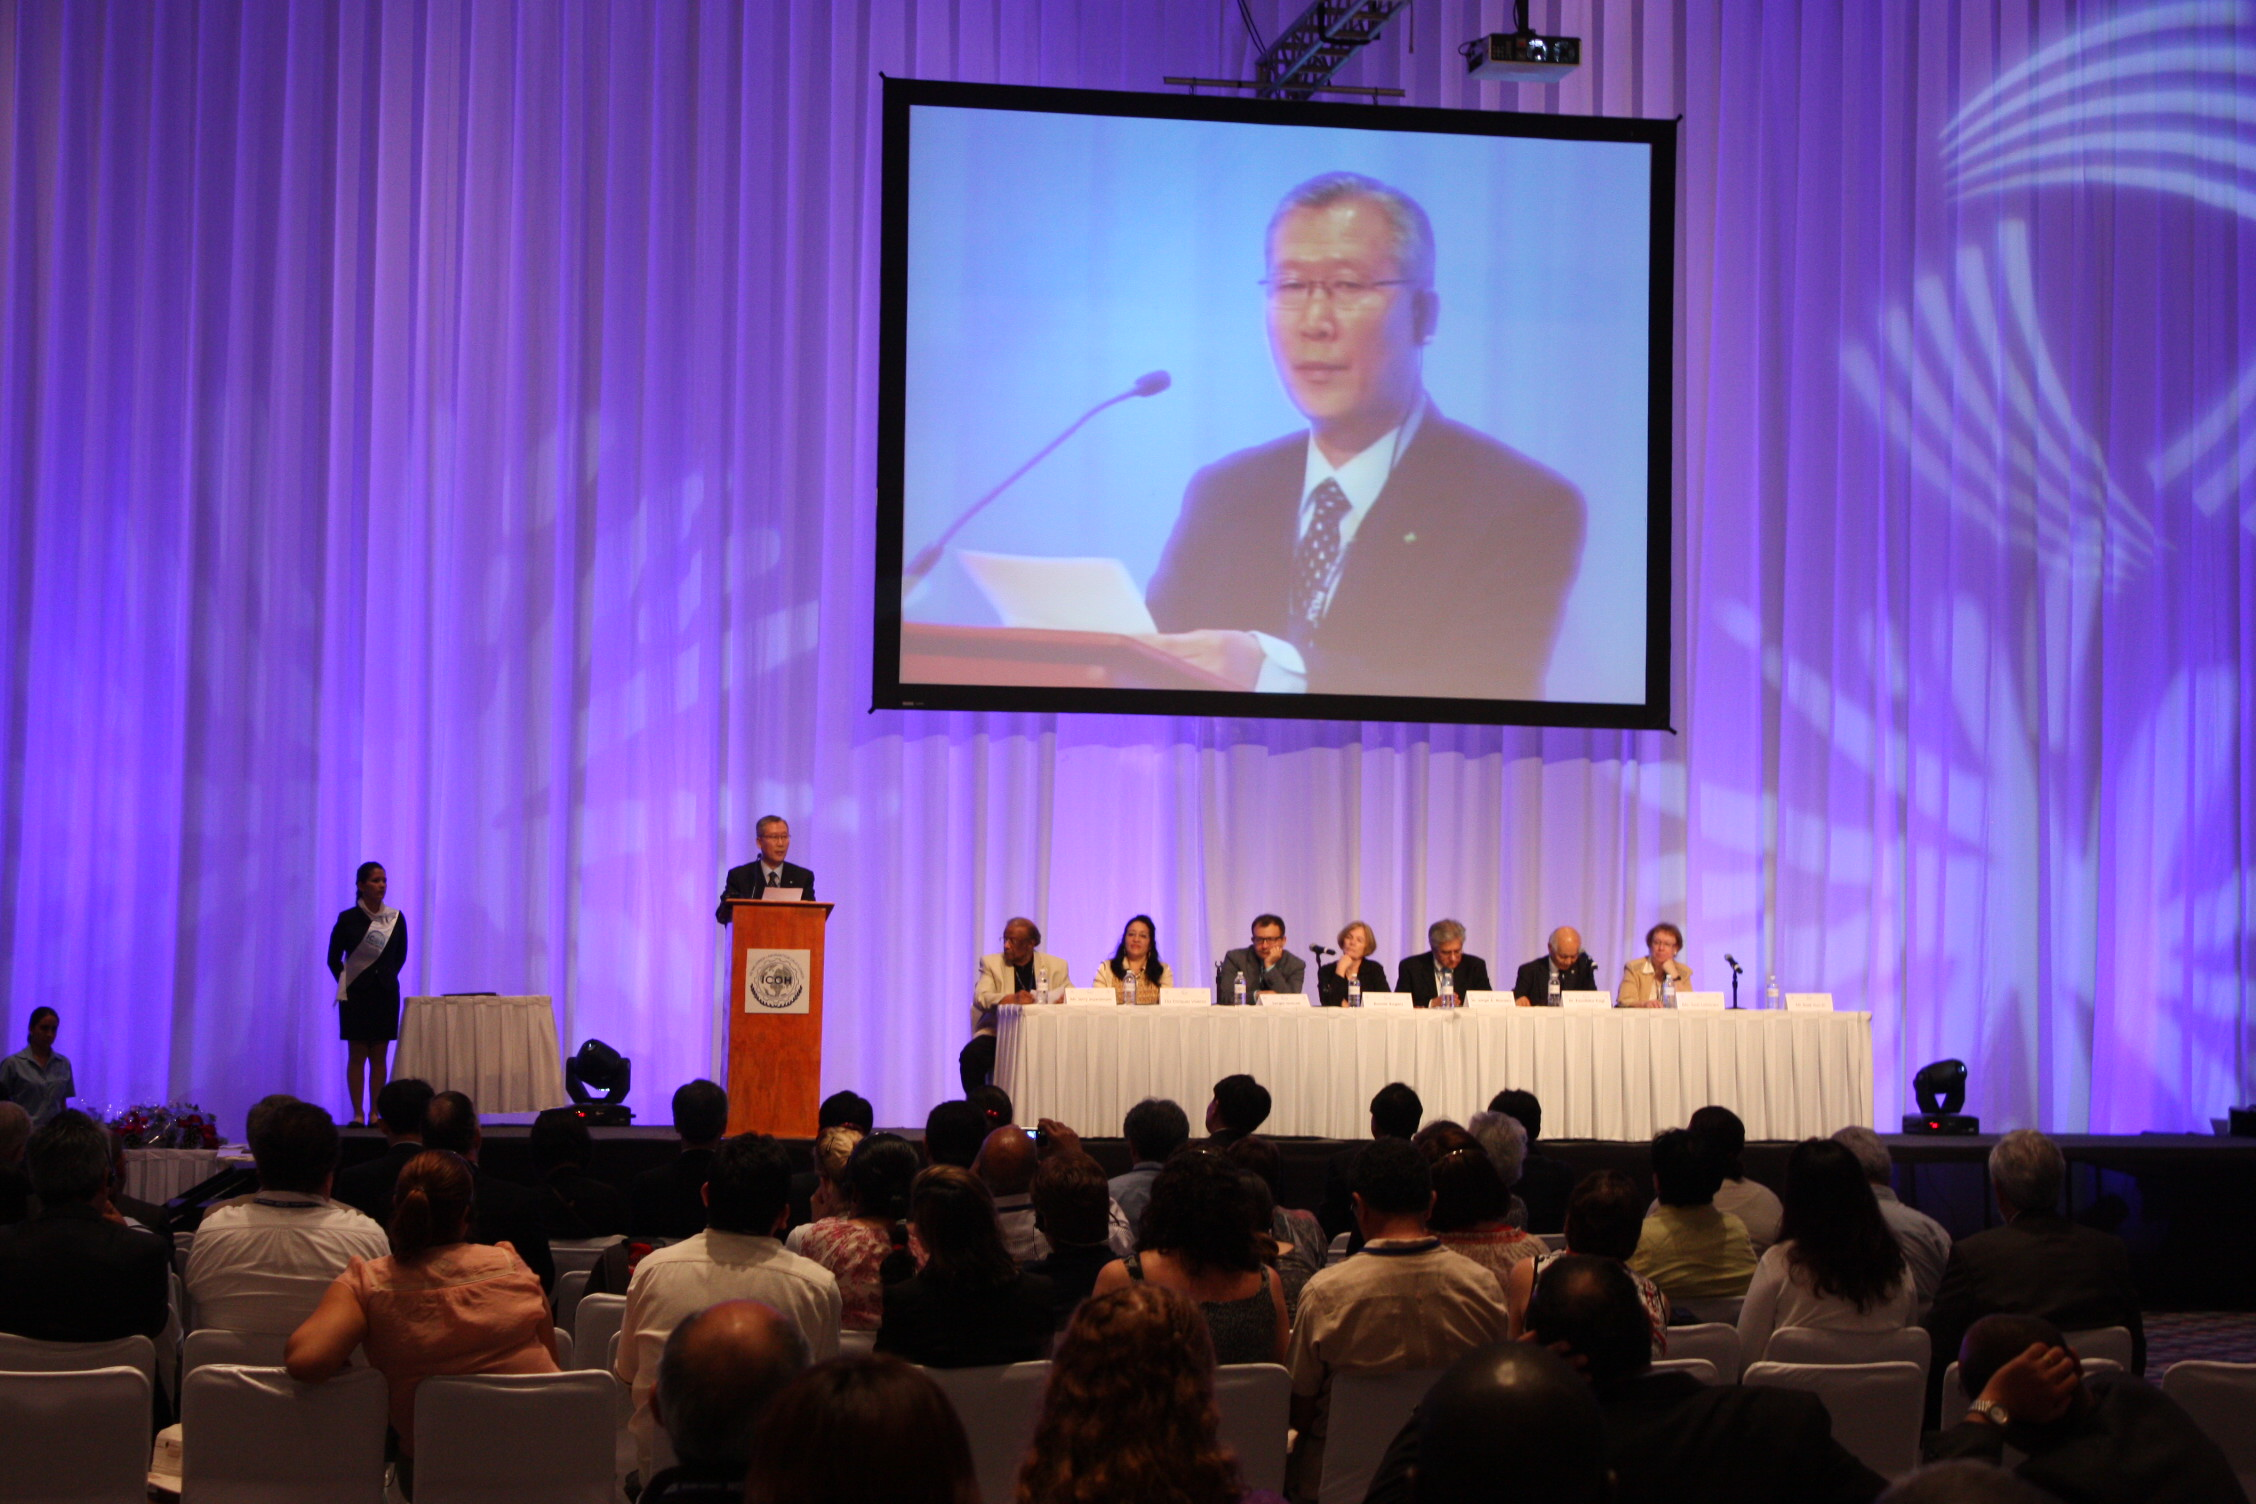 the 30th International Congress on Occupational Health